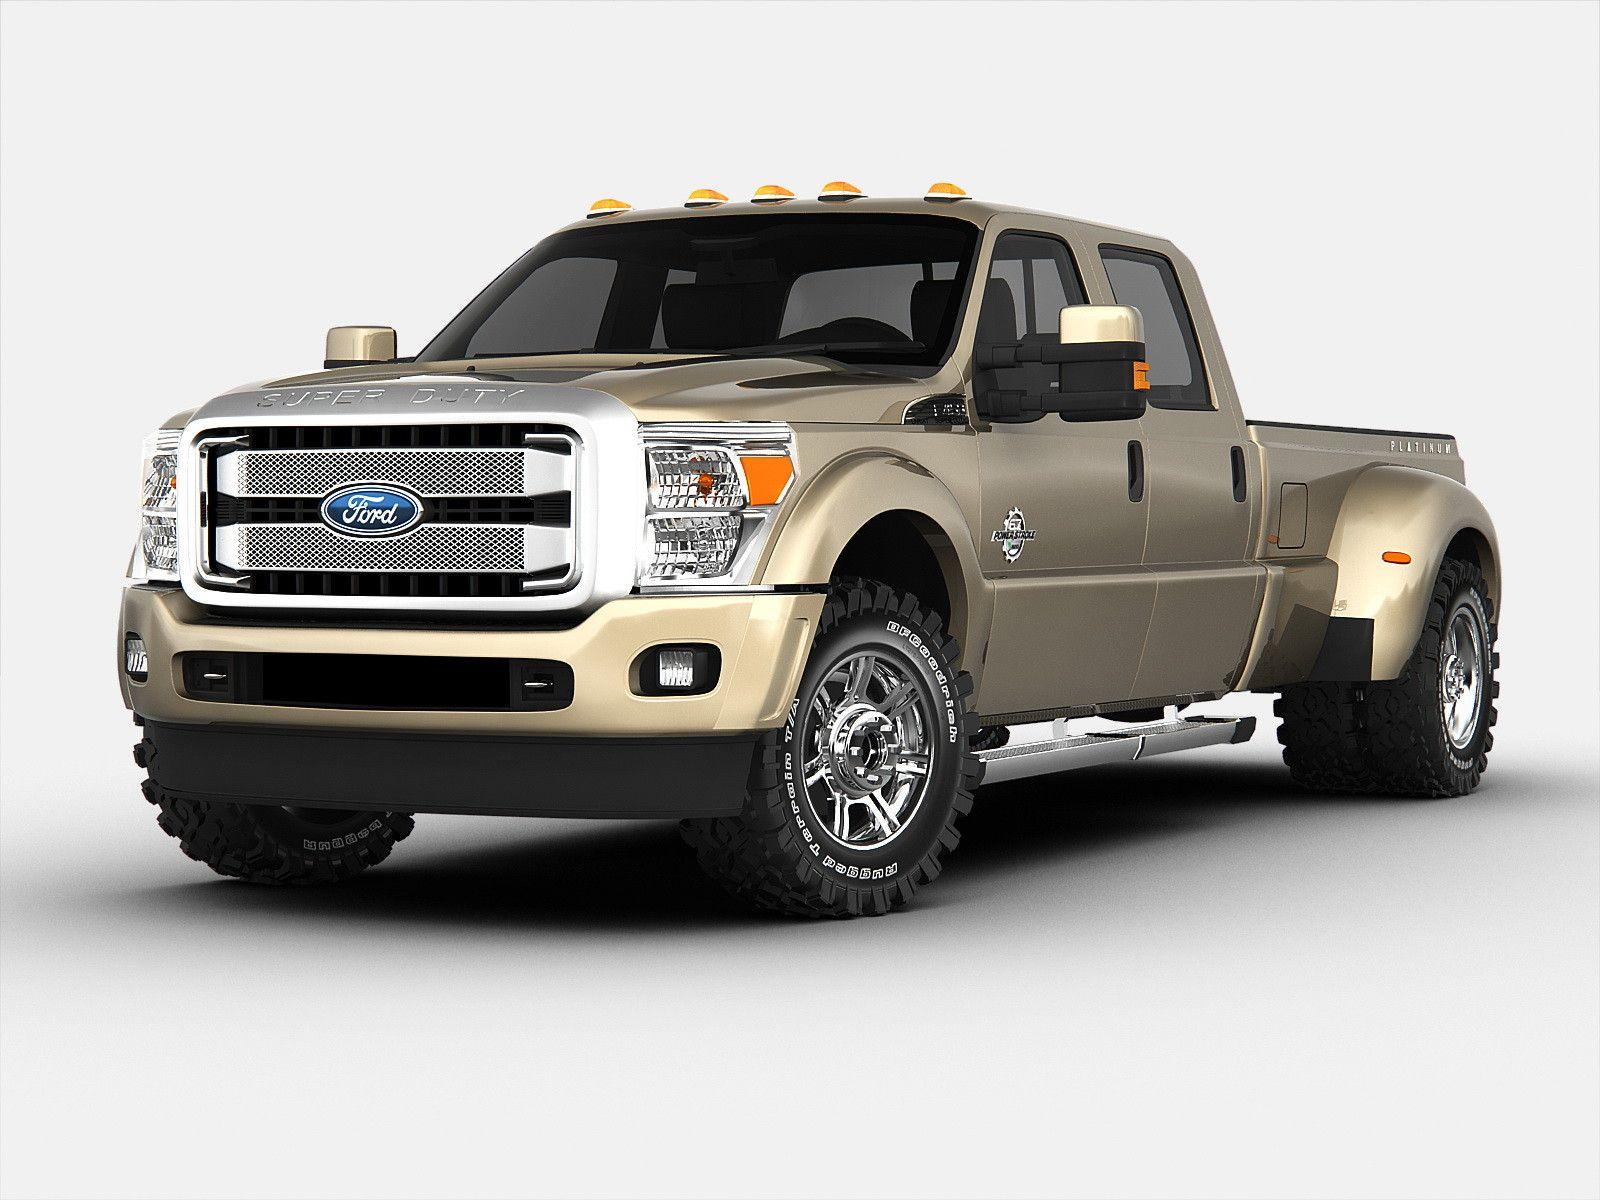 2017 ford atlas price release date if you have seen ford f then youve a clue of how 2017 ford atlas will look like this upcoming vehicle will likely be - 2014 Ford F Series Super Duty